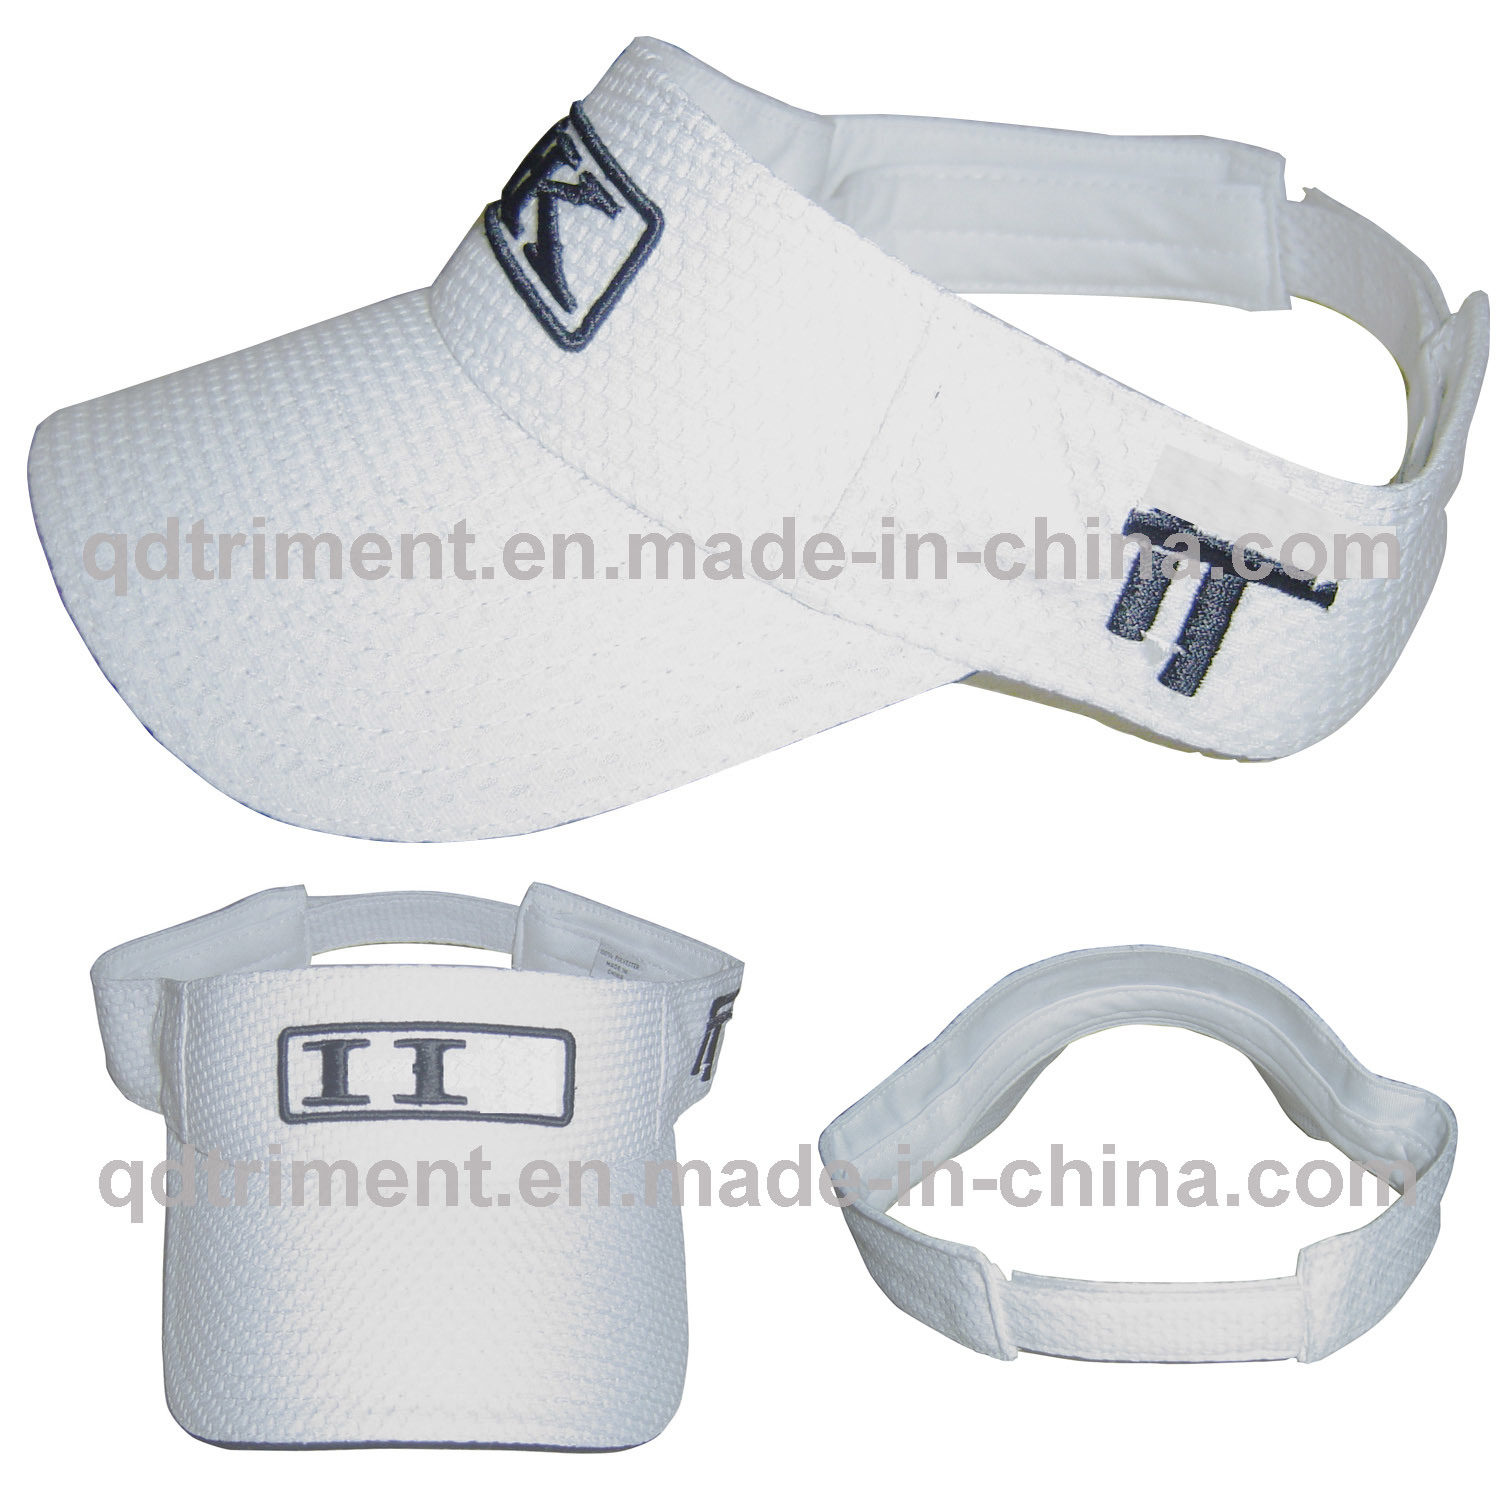 China breathable polyester mesh embroidery sport sun visor hat china breathable polyester mesh embroidery sport sun visor hat tmv00139 1 china visor sun visor ccuart Images